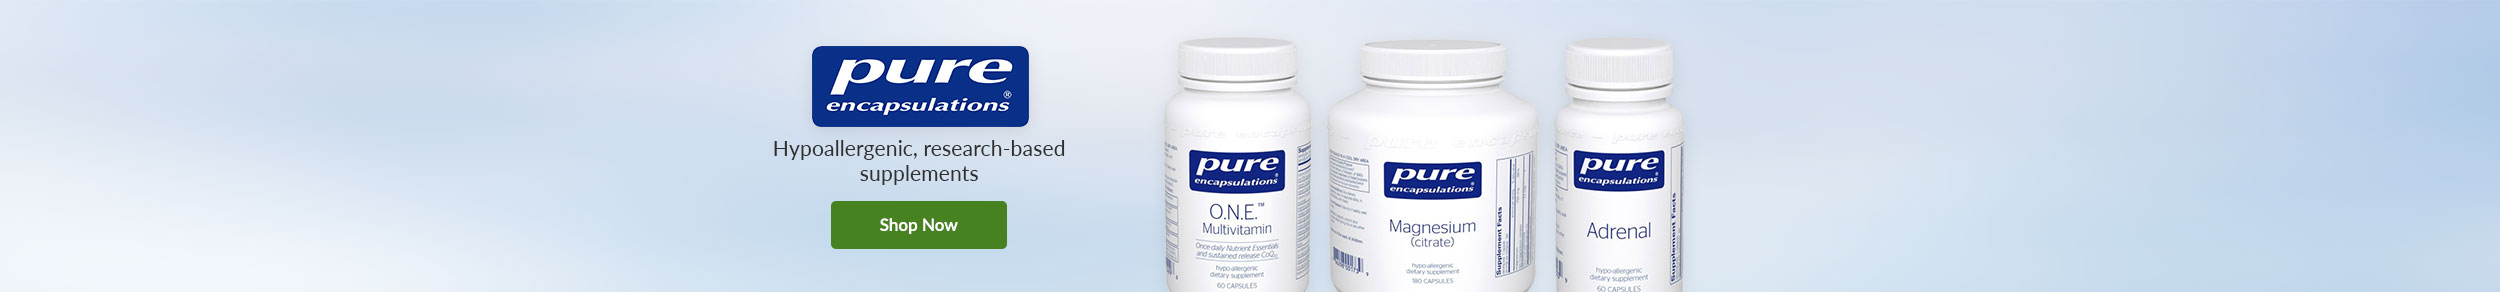 Pure Encapsulations - Hypoallergenic, research-based supplements